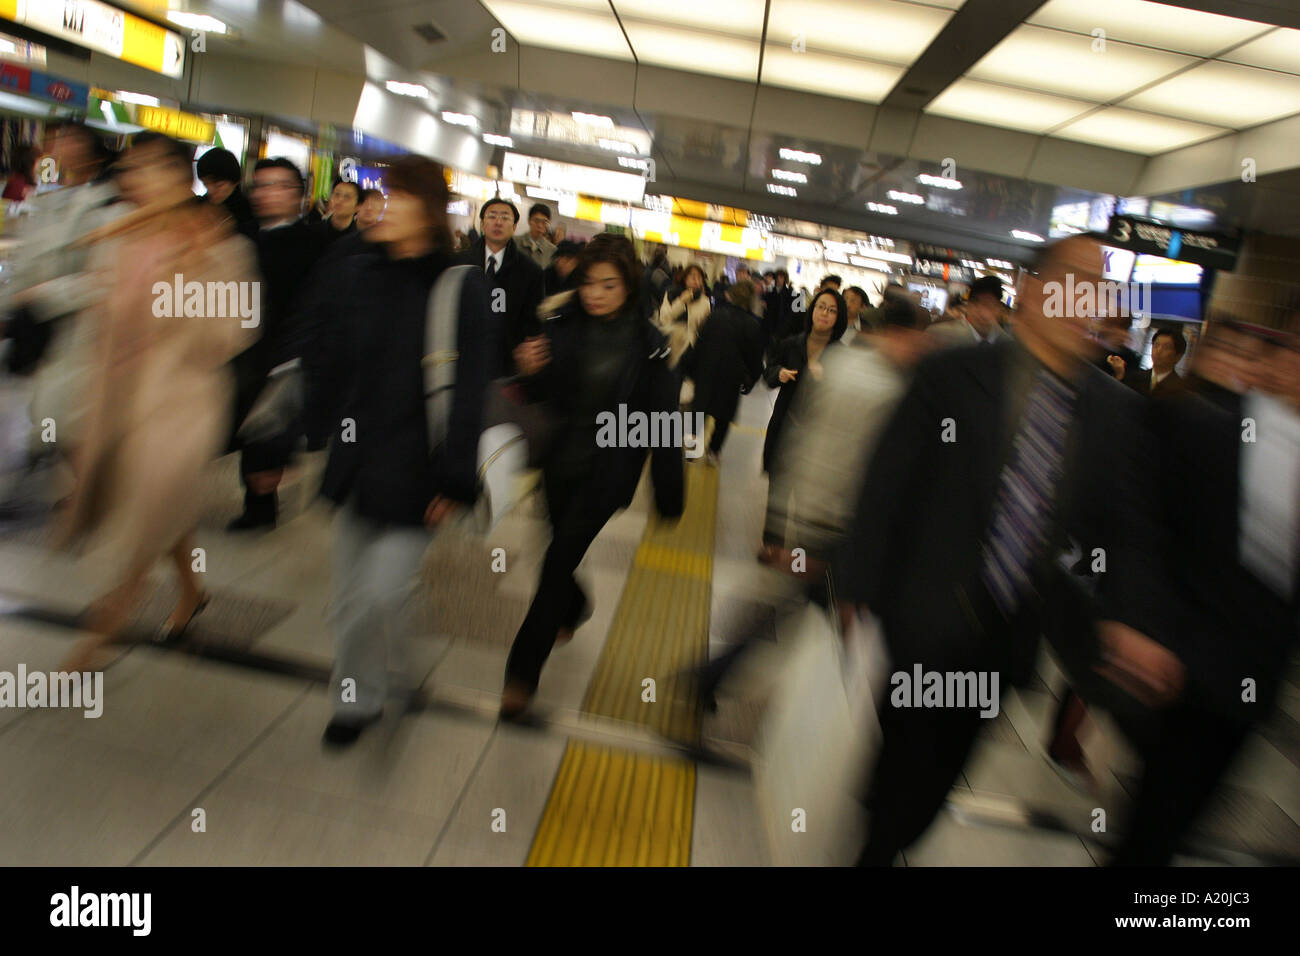 Morning rush hour commuters make their way through Tokyo Central Train Station, Tokyo, Japan - Stock Image